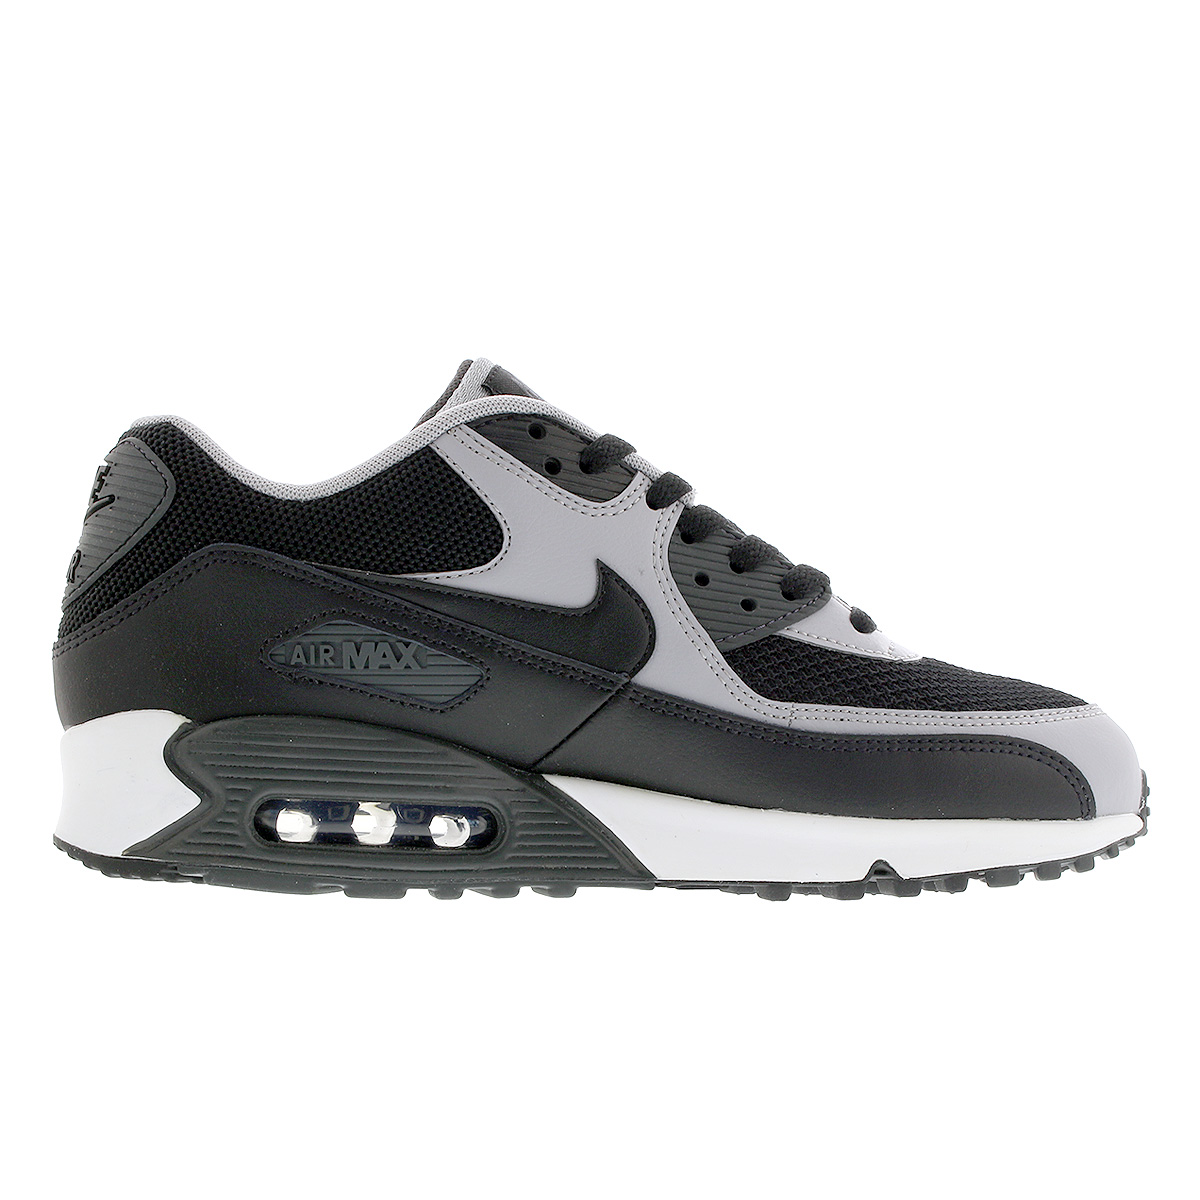 NIKE AIR MAX 90 ESSENTIAL Kie Ney AMAX 90 essential BLACKGREY 537,384 053